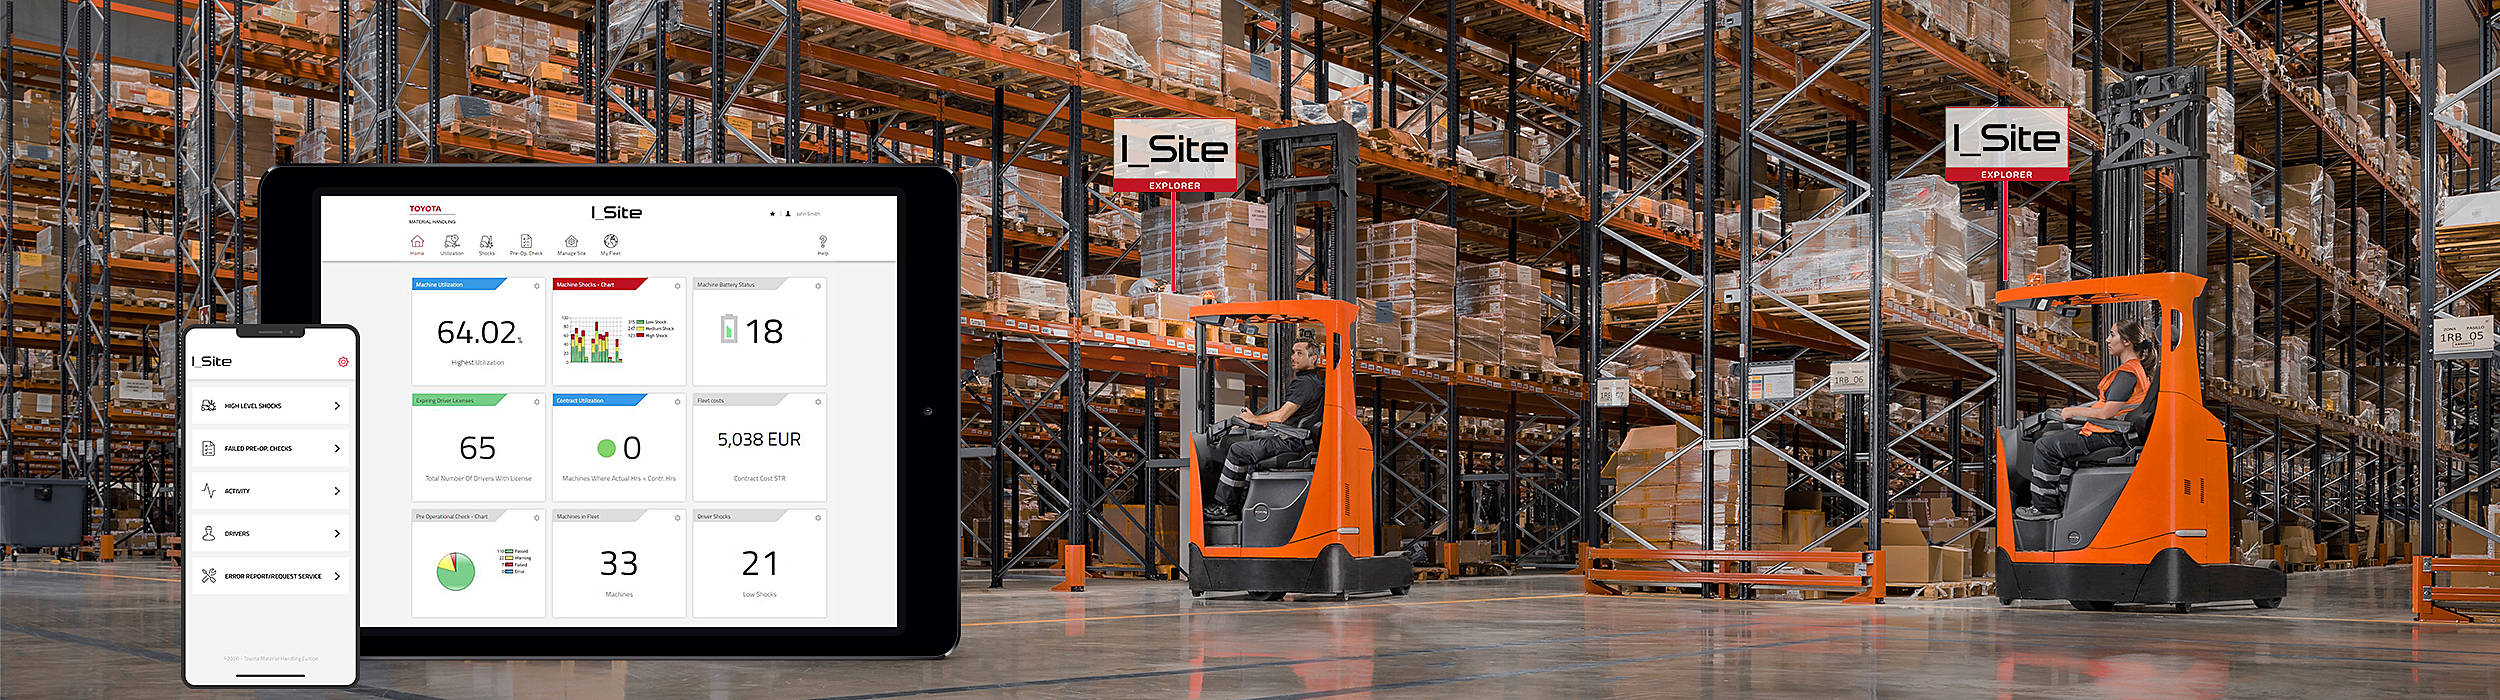 I_Site comes in three packages. With I_Site Starter you get, for free, access to the service app and keep track of your fleet's operating hours. The other two packages provide you with a complete cost or perfomance overview of your forklift fleet.